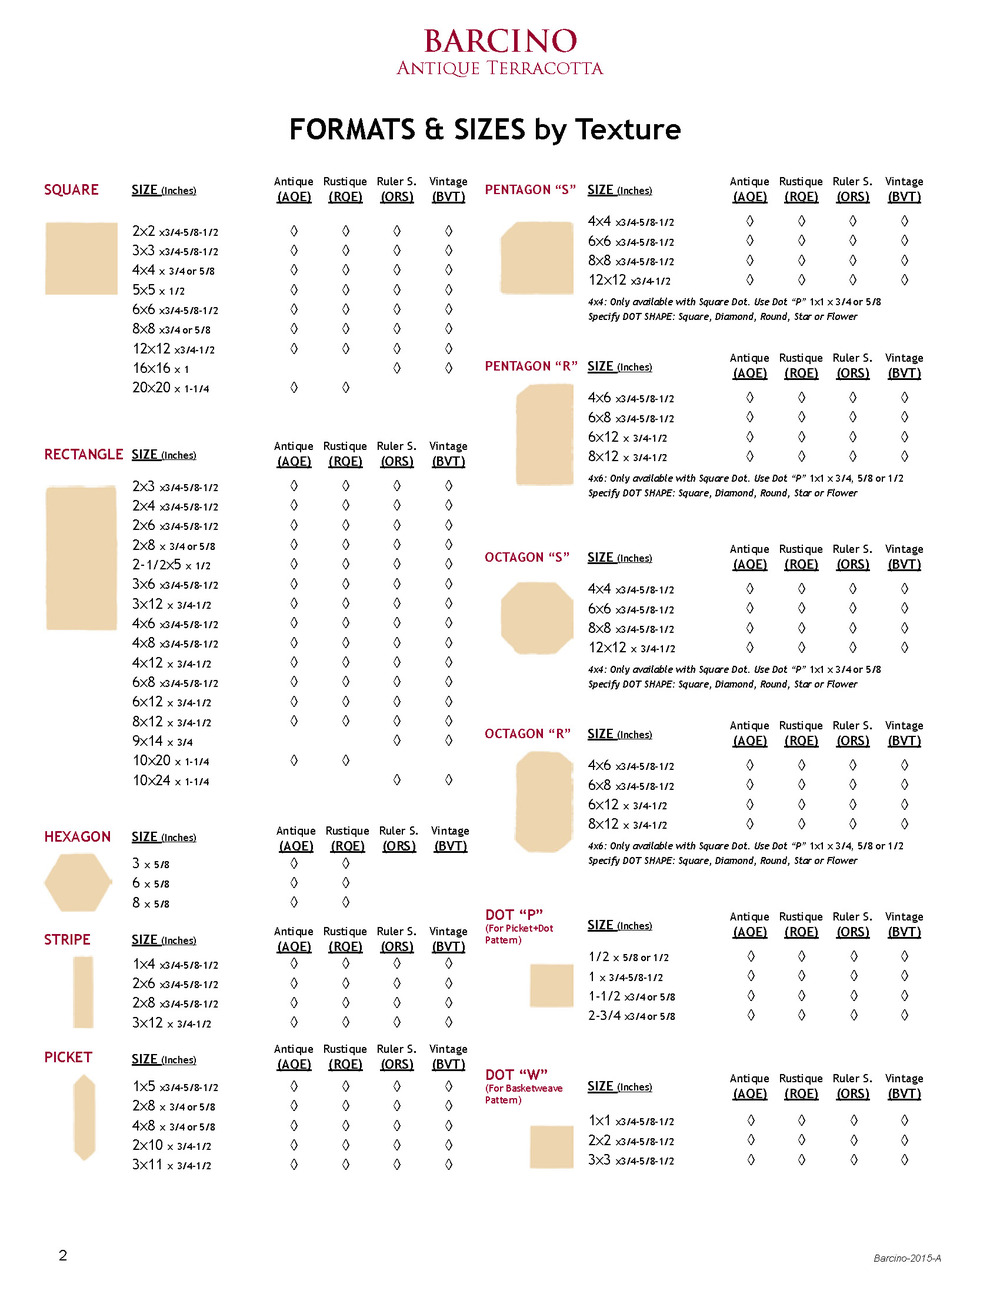 1-Barcino-Formats&Sizes-2015-A_Page_2.jpg